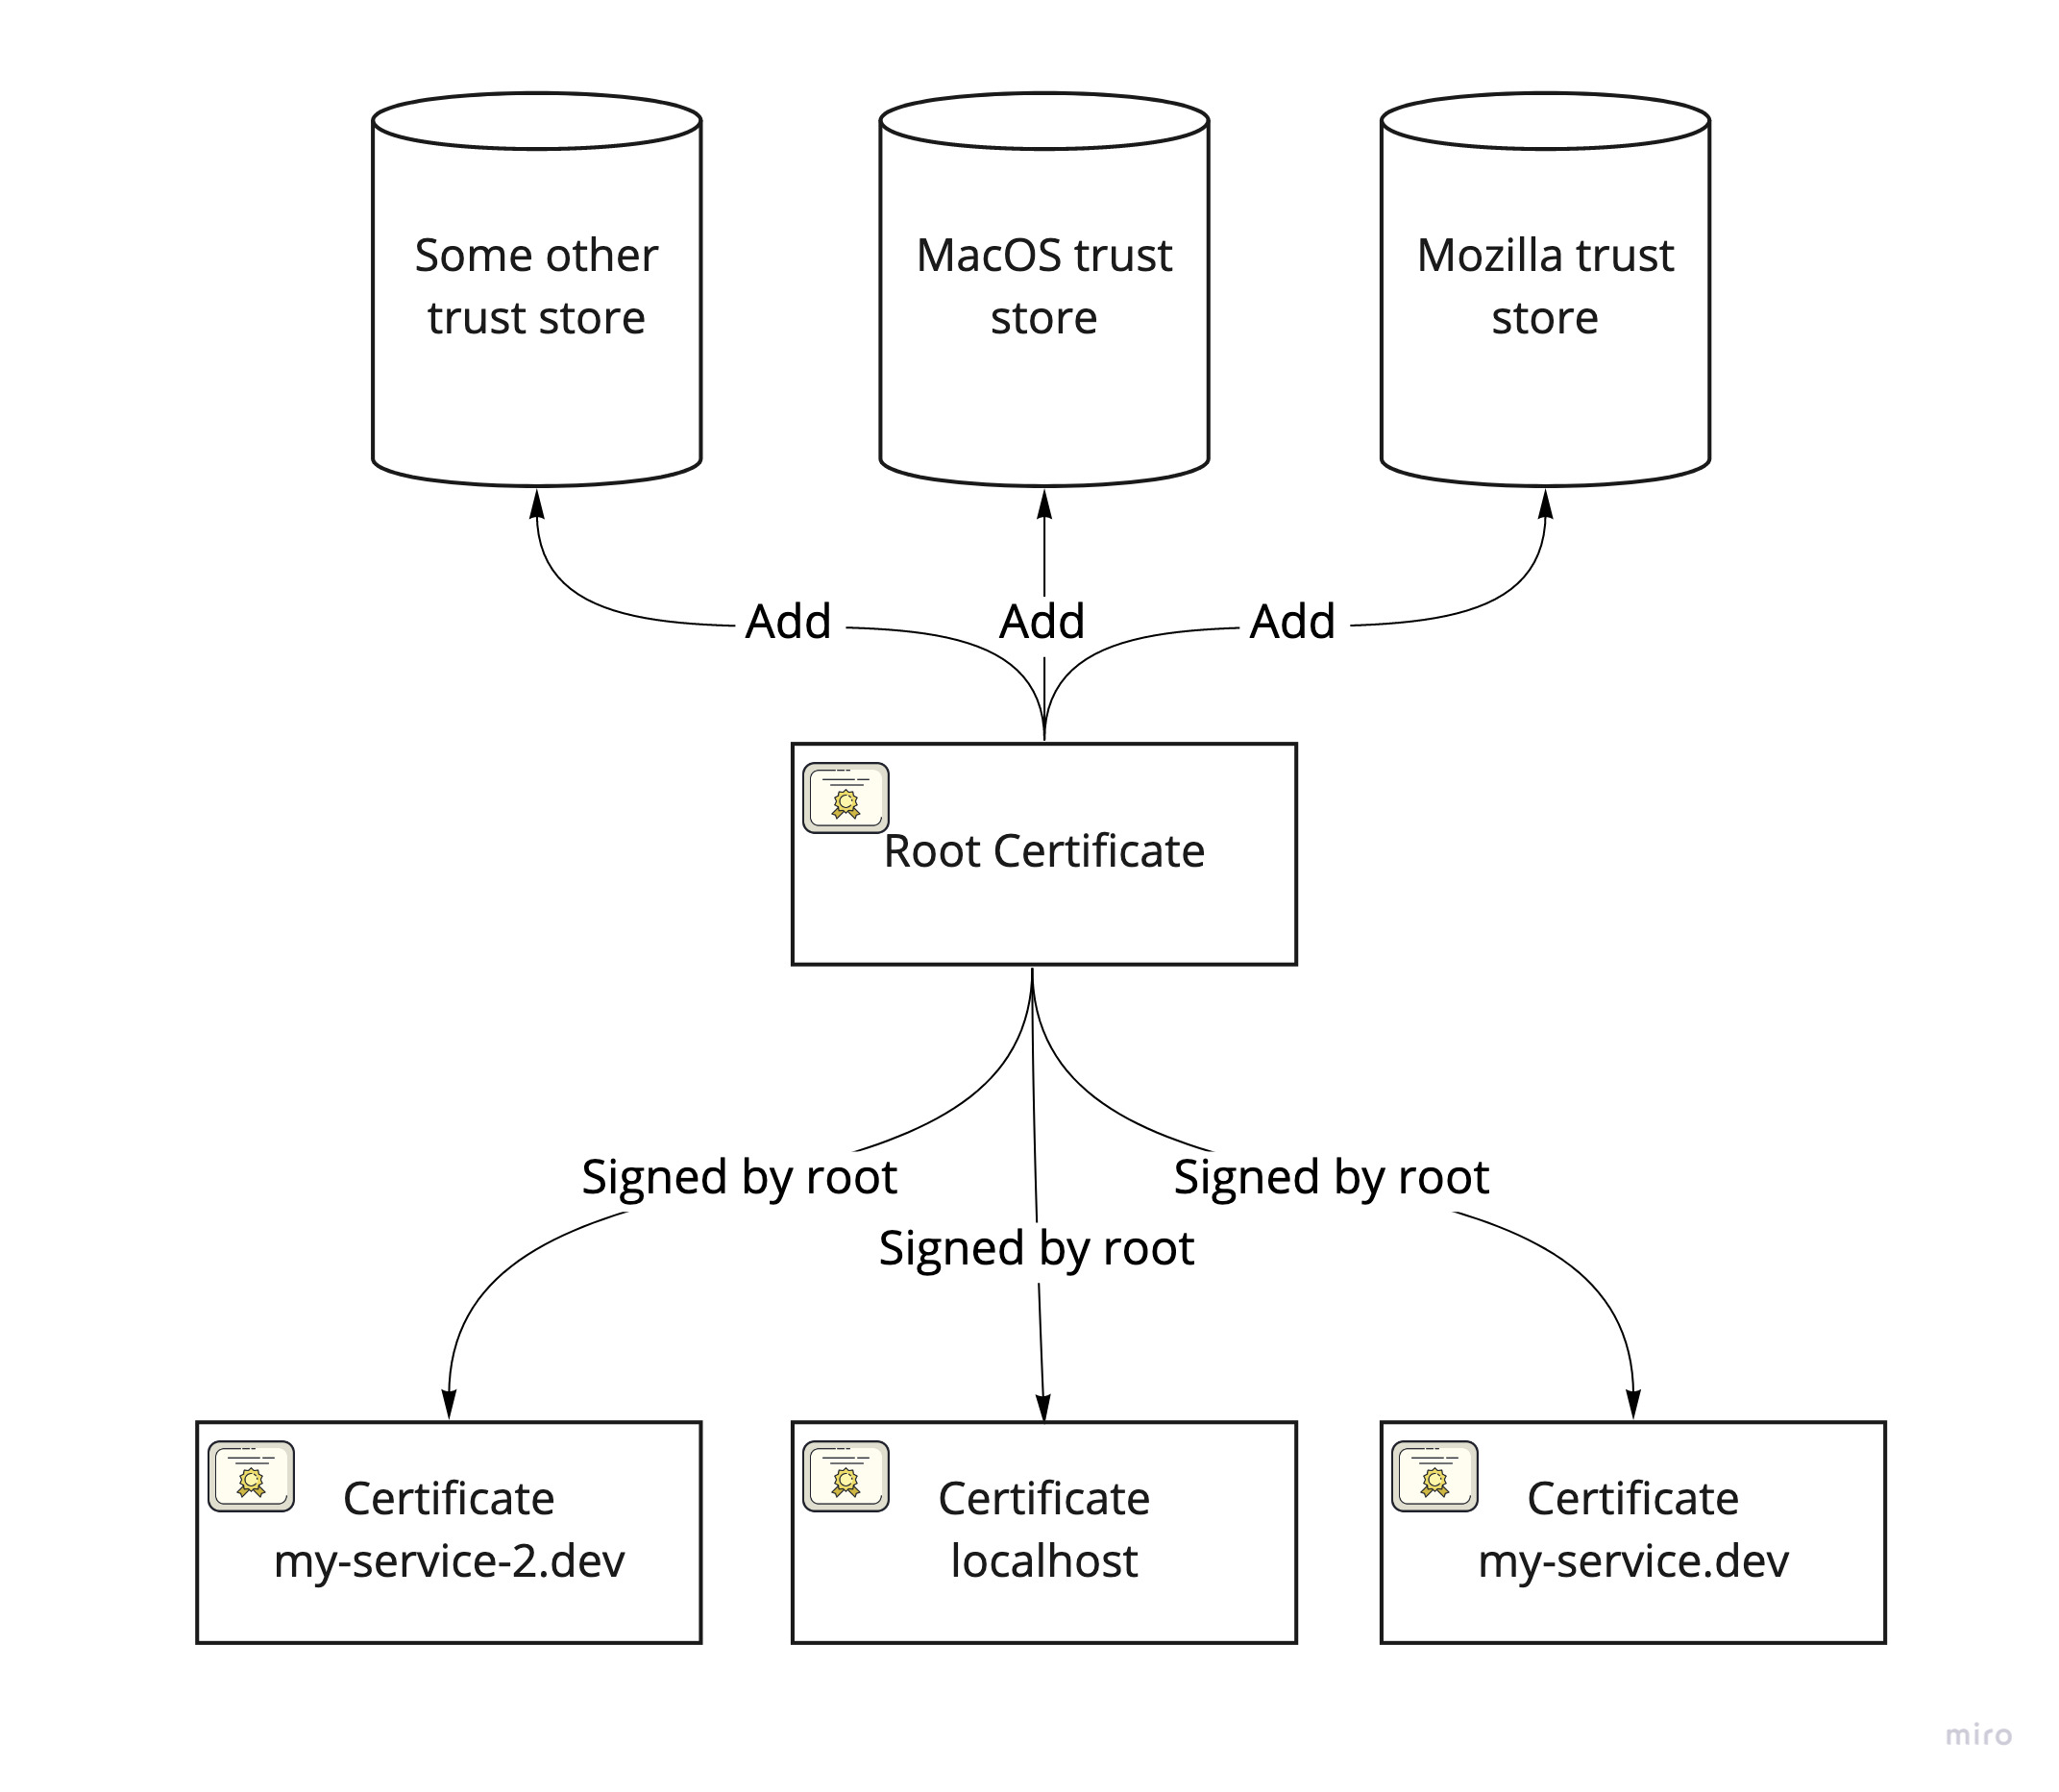 Certificates and trust stores